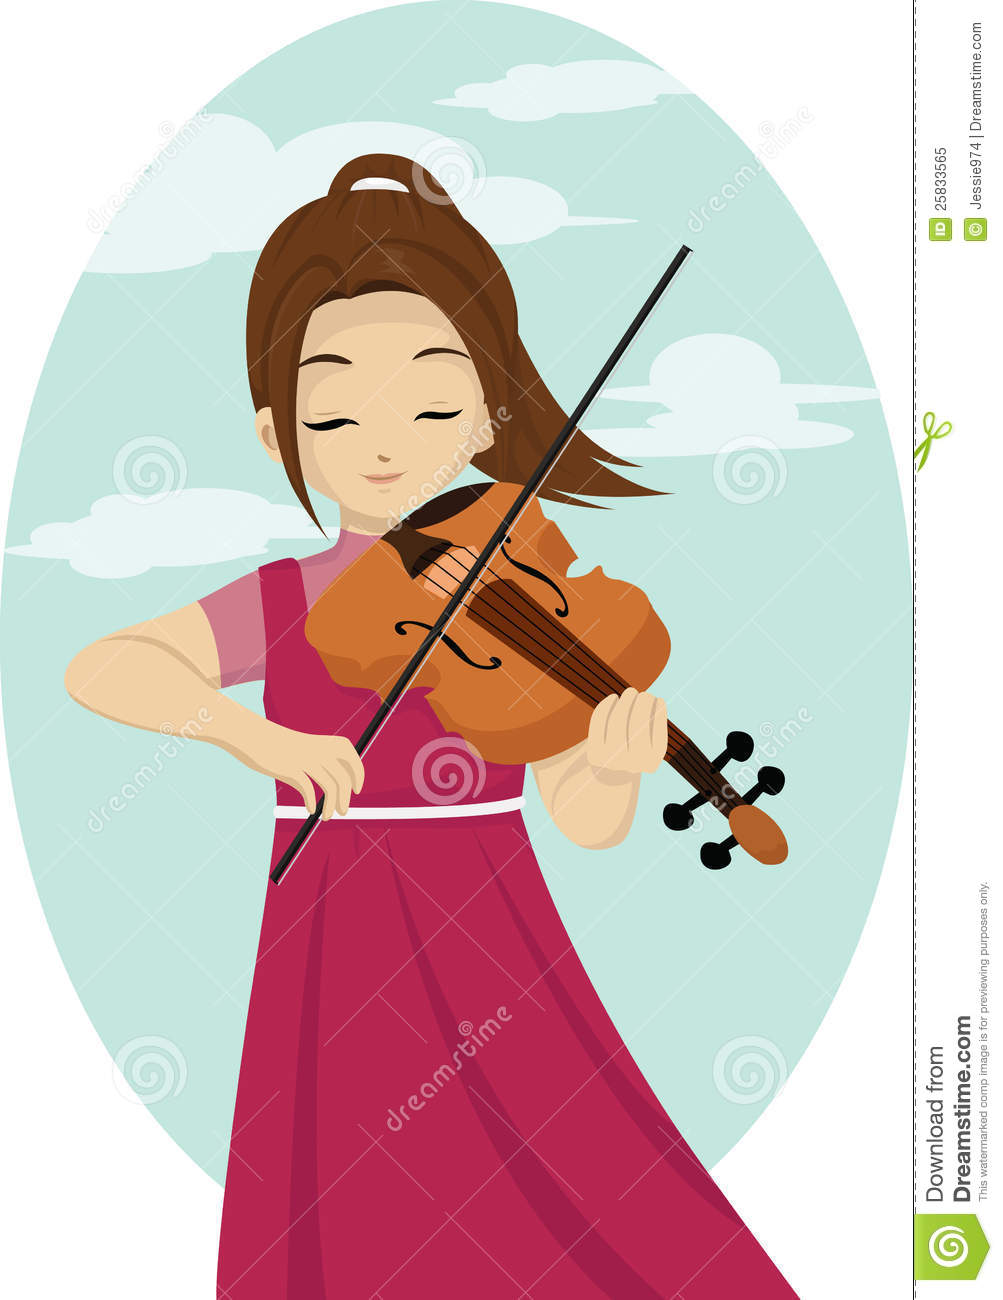 Violin player clip art.